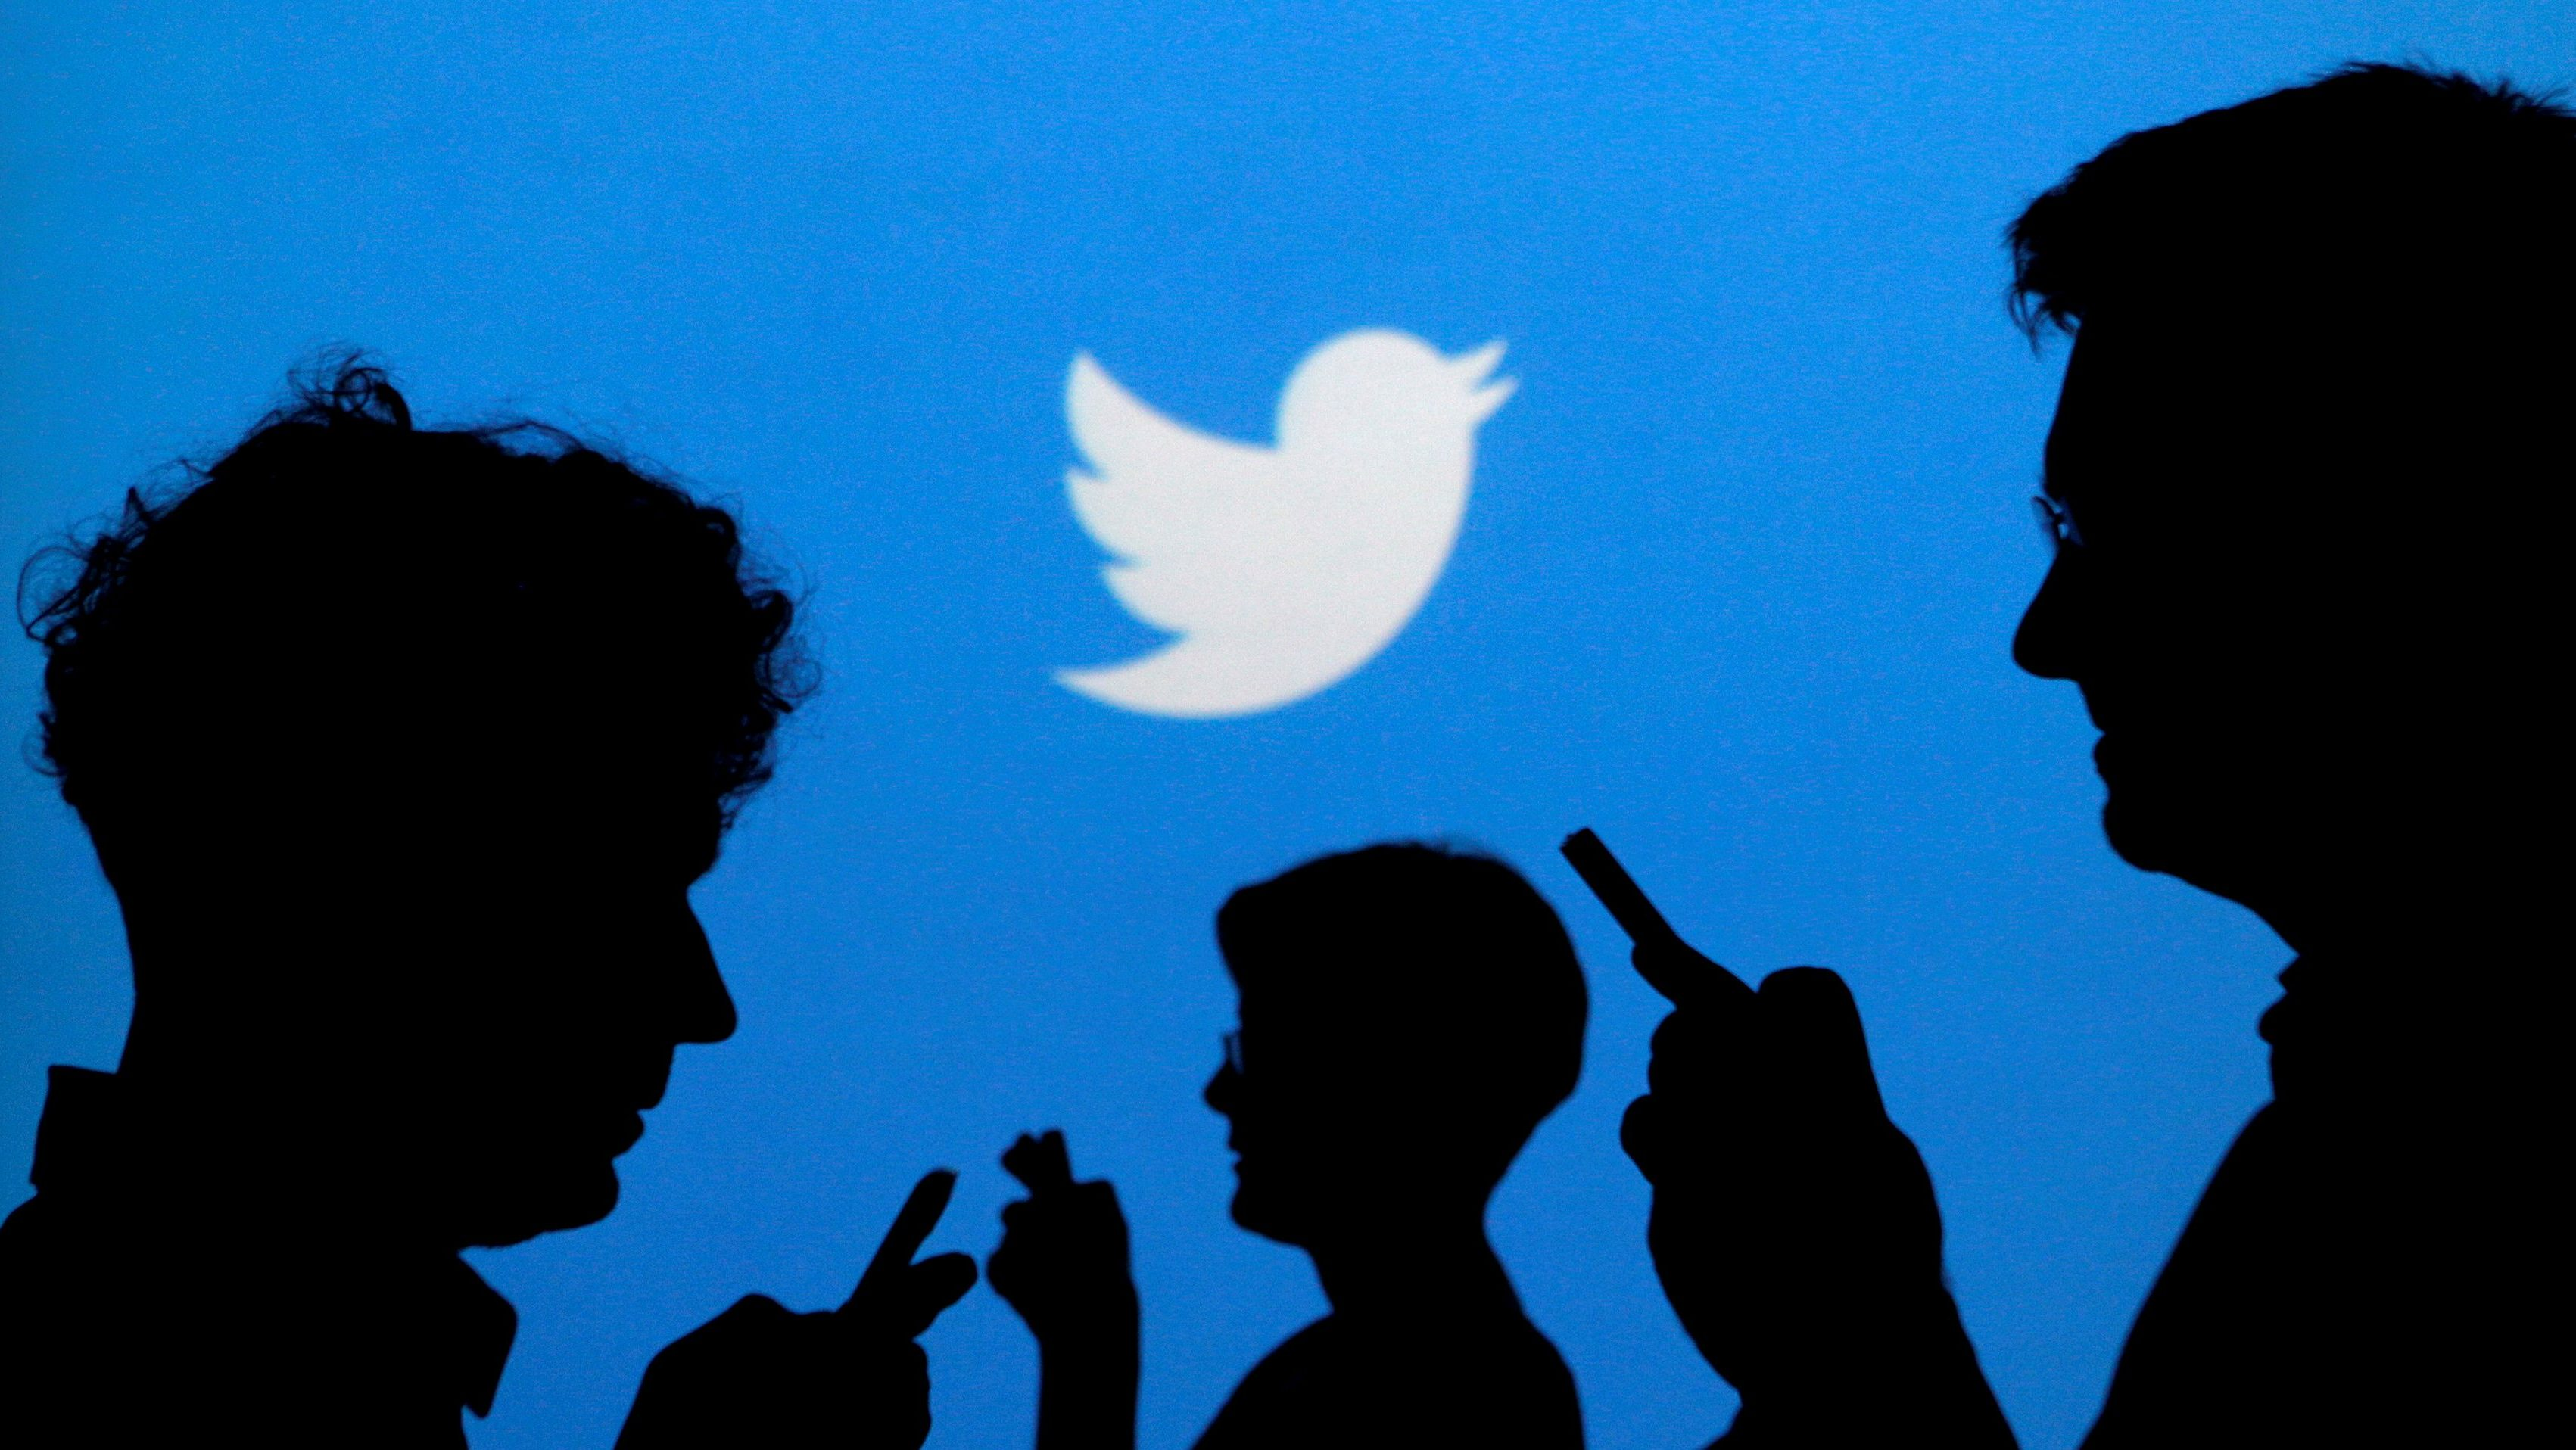 FILE PHOTO:    People holding mobile phones are silhouetted against a backdrop projected with the Twitter logo in this illustration picture taken in  Warsaw September 27, 2013.